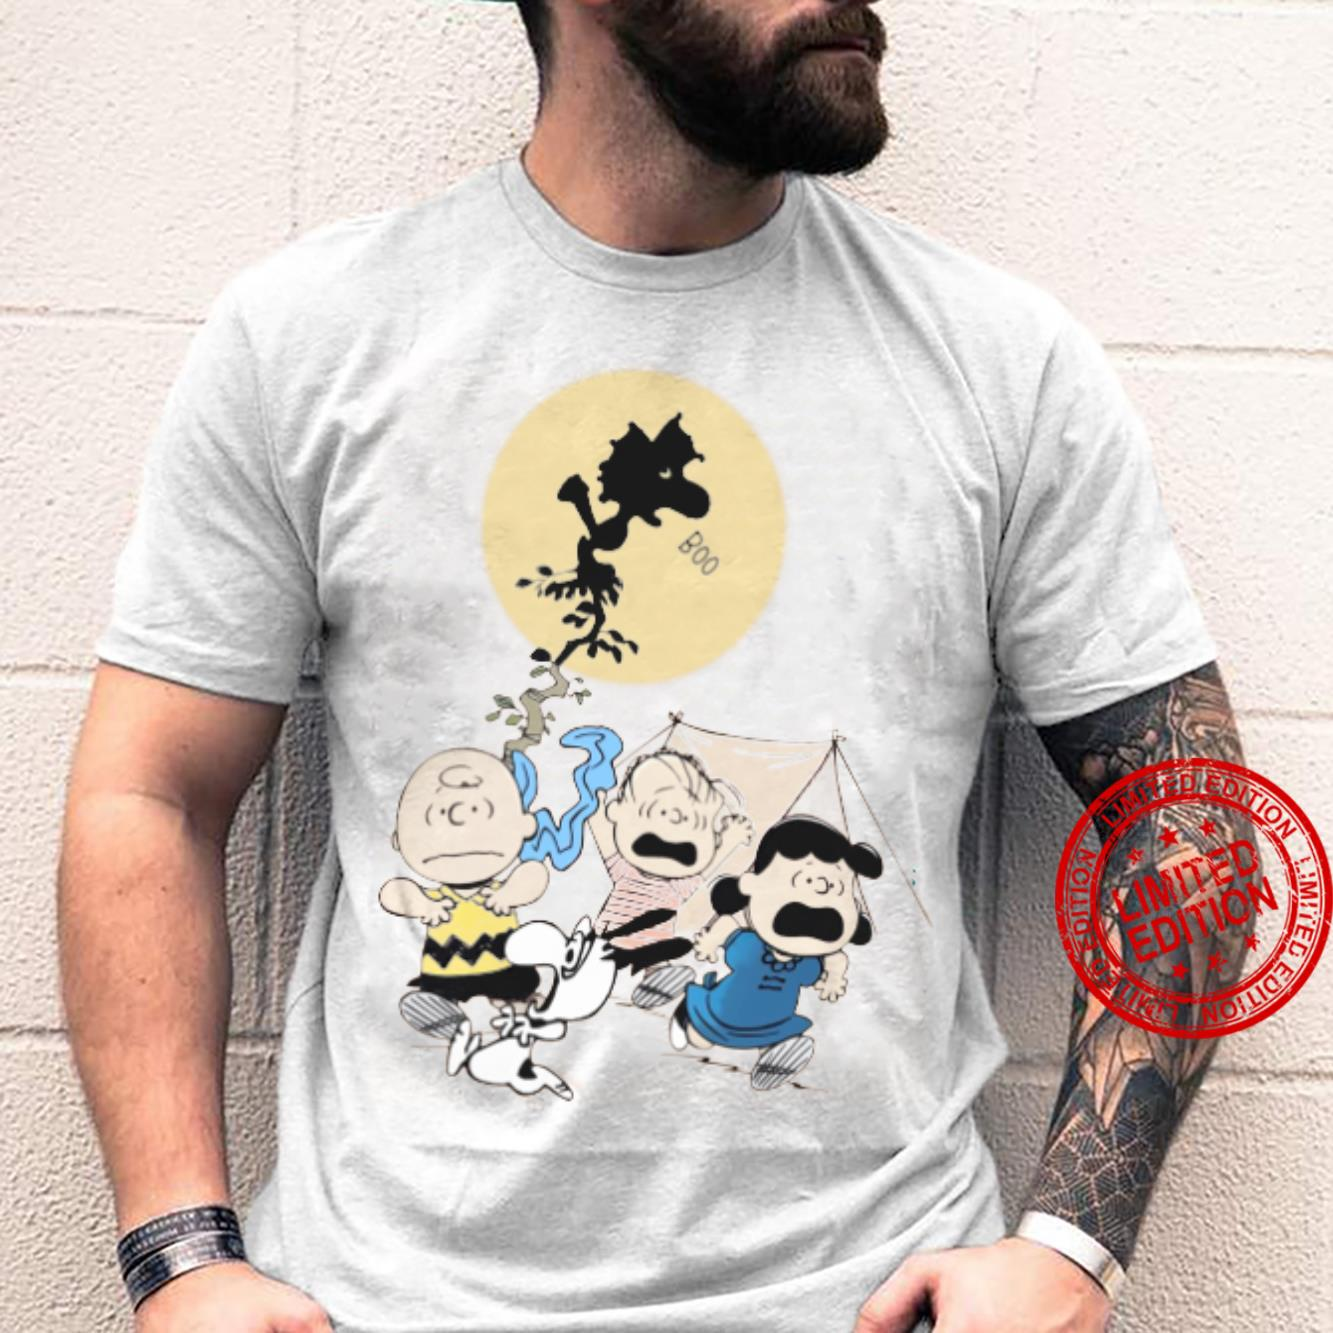 The Peanuts Boo And Friends Shirt unisex